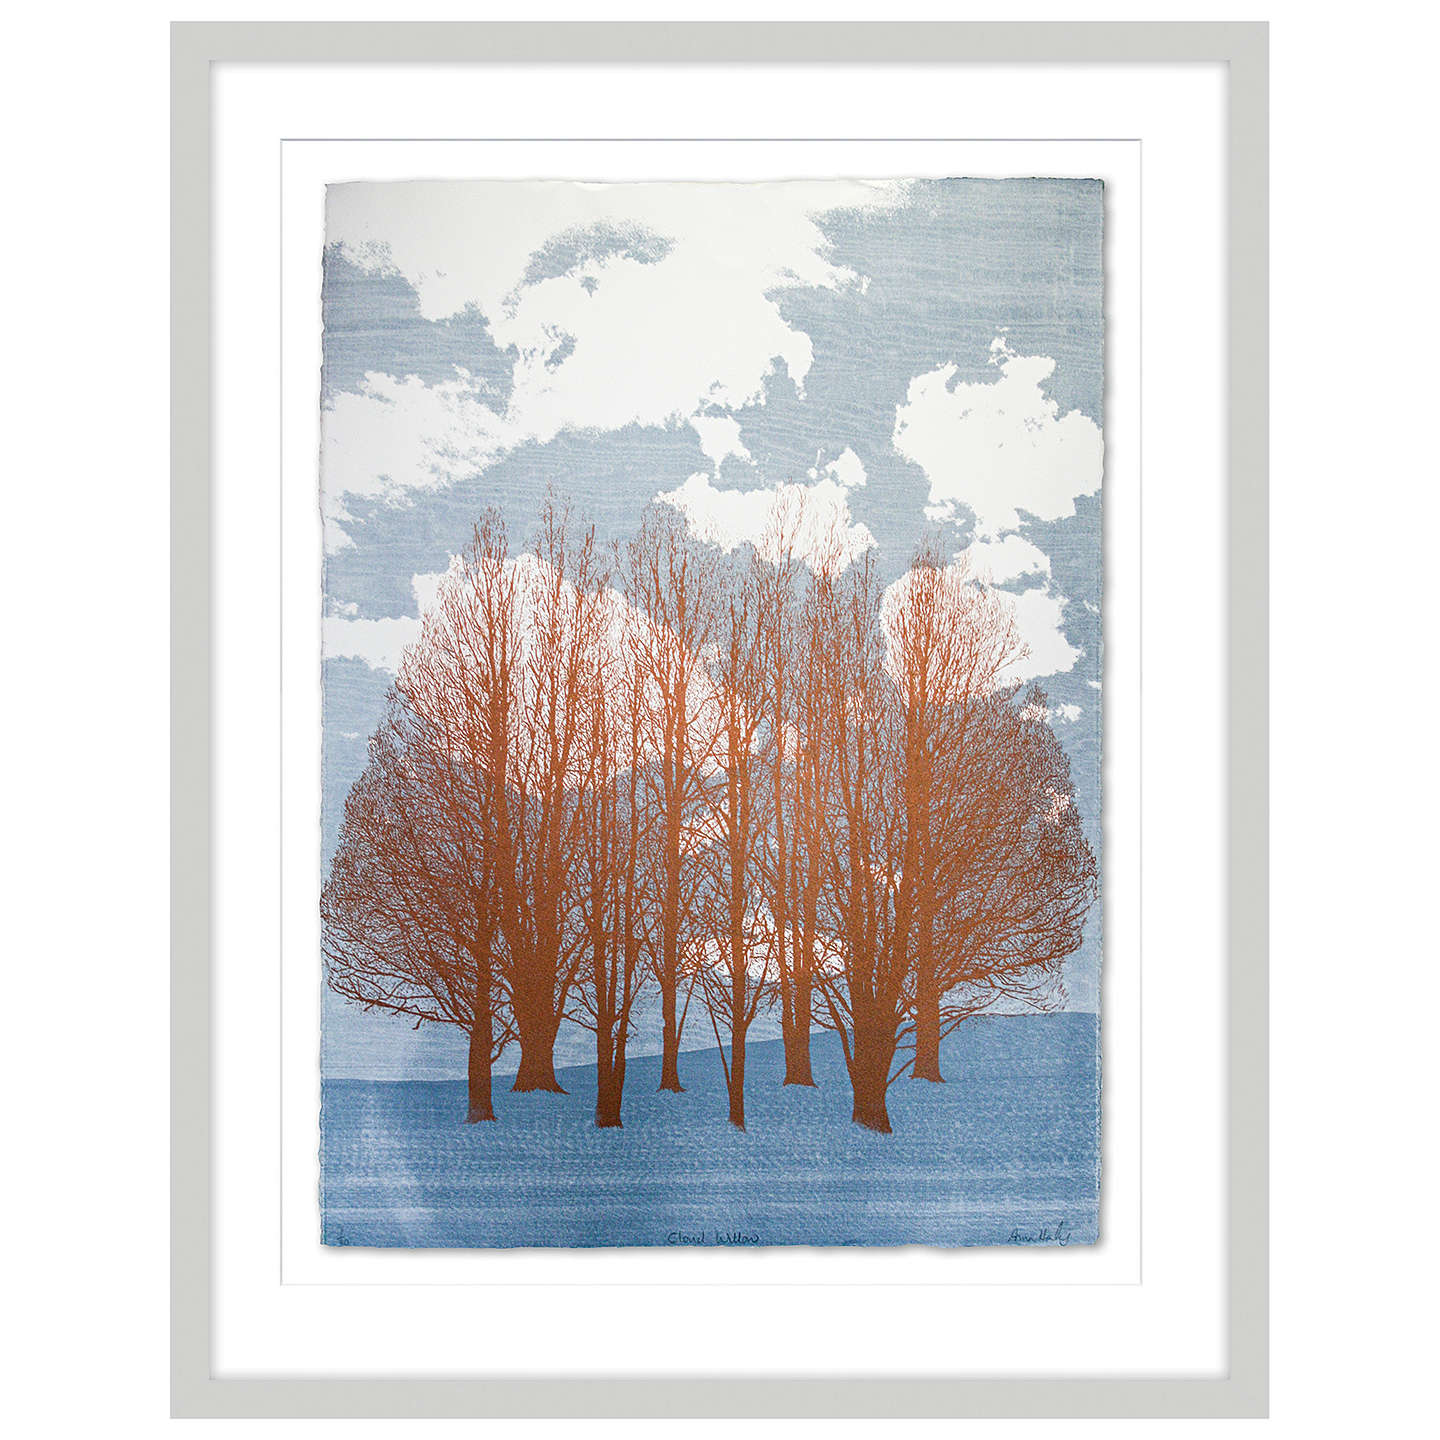 BuyAnna Harley - Cloud Willow Limited Edition Framed Screenprint, 93 x 73cm Online at johnlewis.com